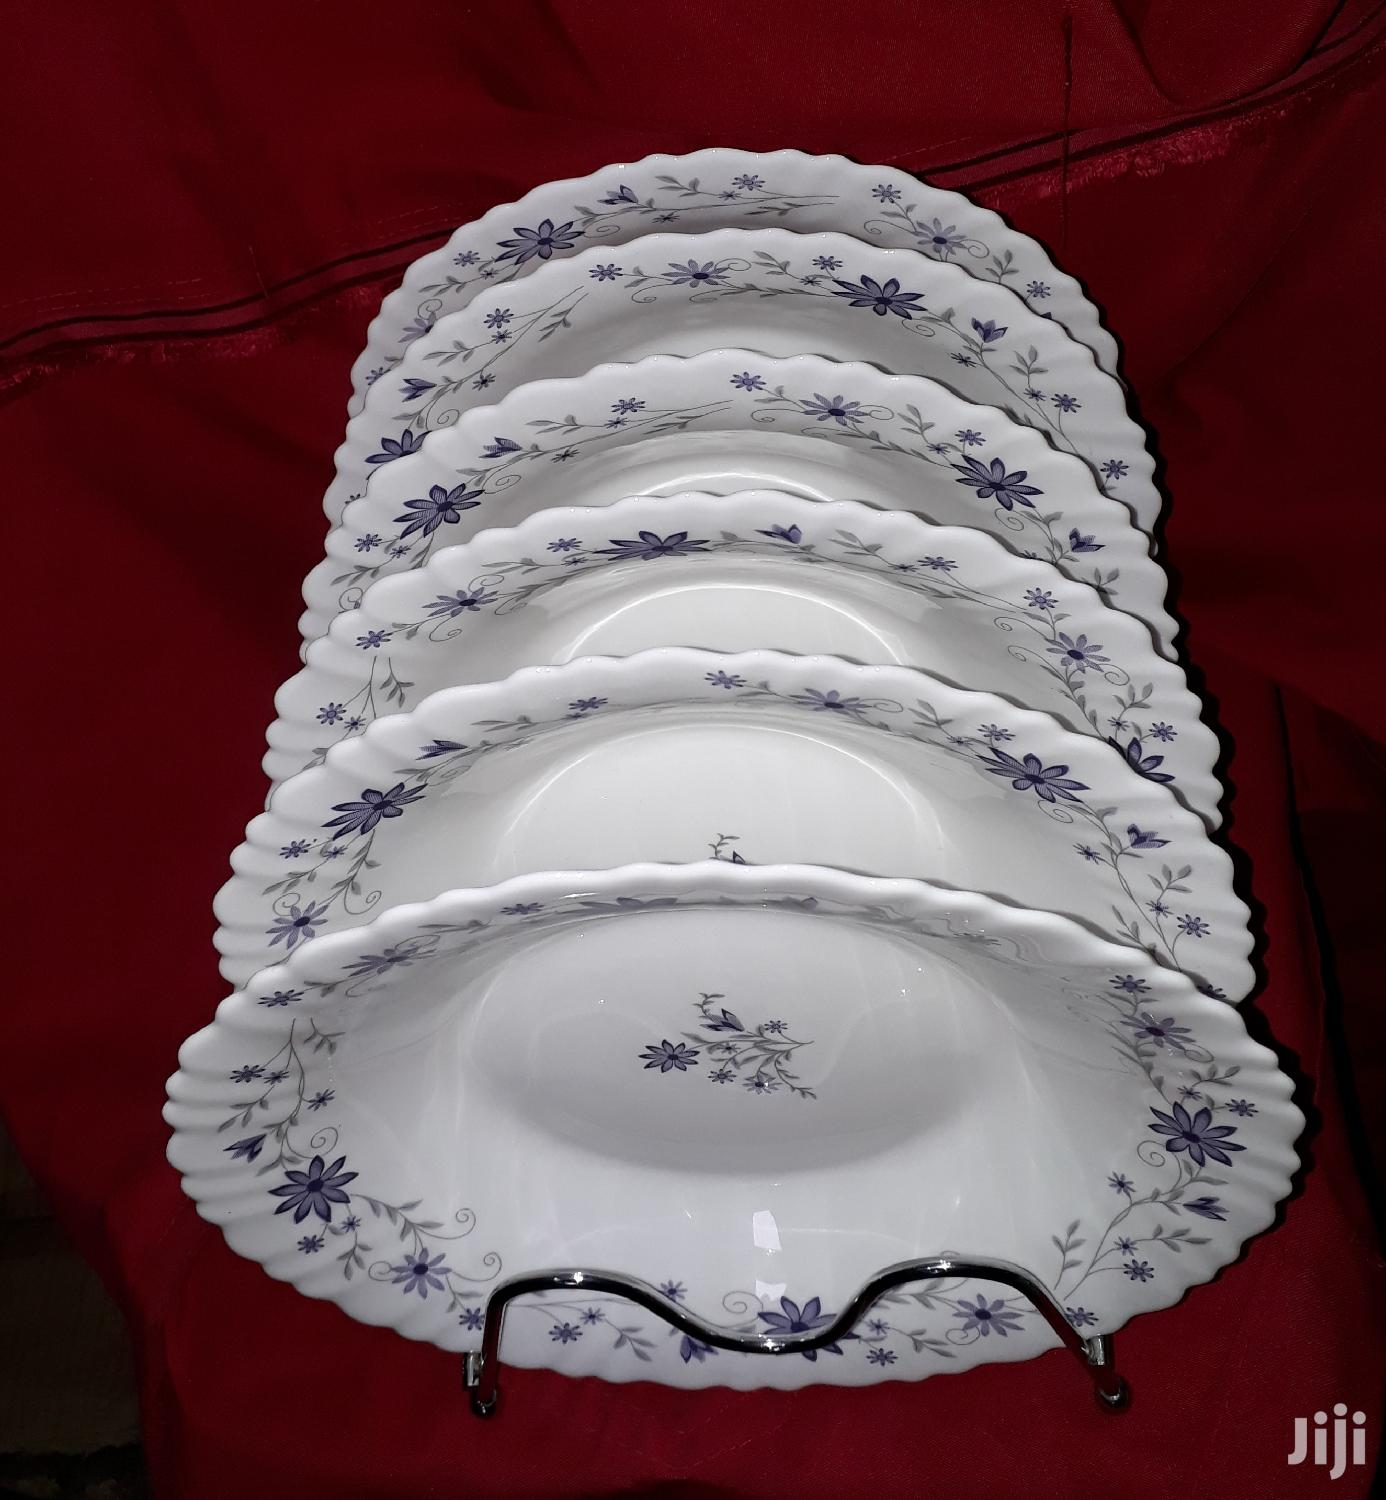 6pc Ceramic Plate/Soup Plate/Plates | Kitchen & Dining for sale in Nairobi Central, Nairobi, Kenya